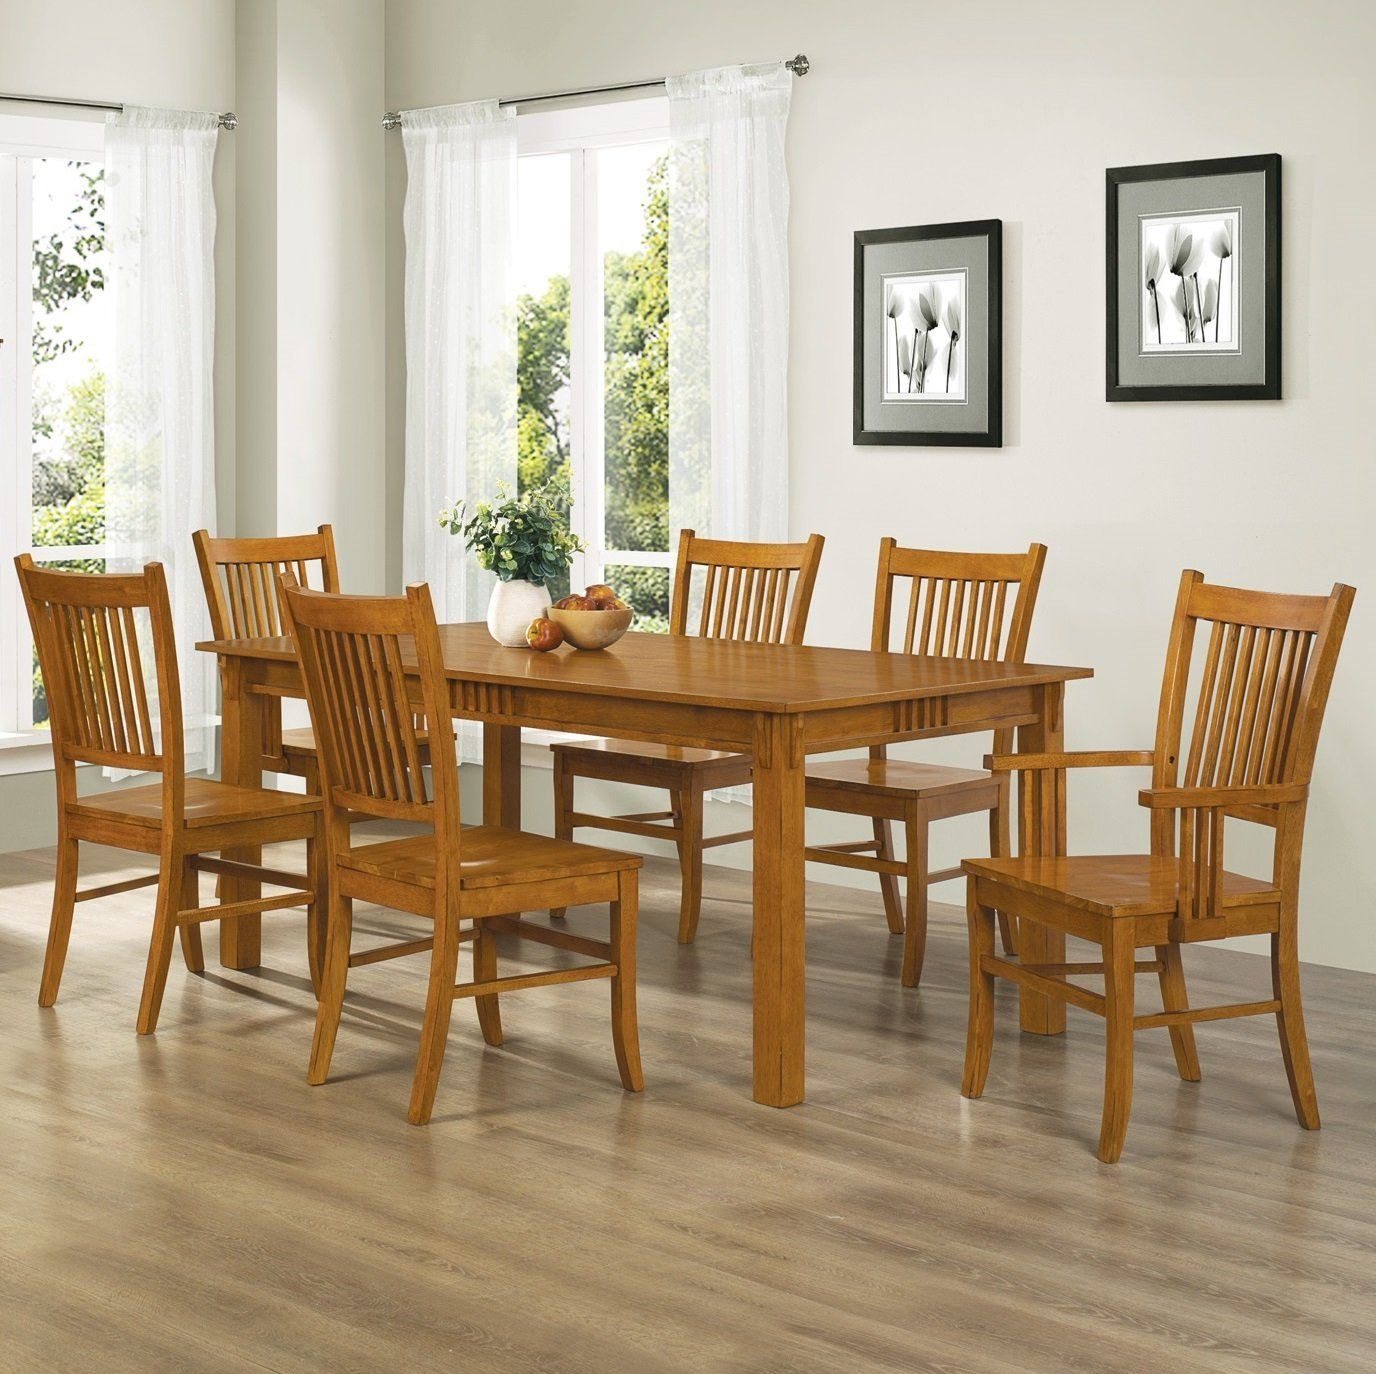 All Wood Dining Room Chairs Mission Style Dining Room Furniture  Modern European Furniture